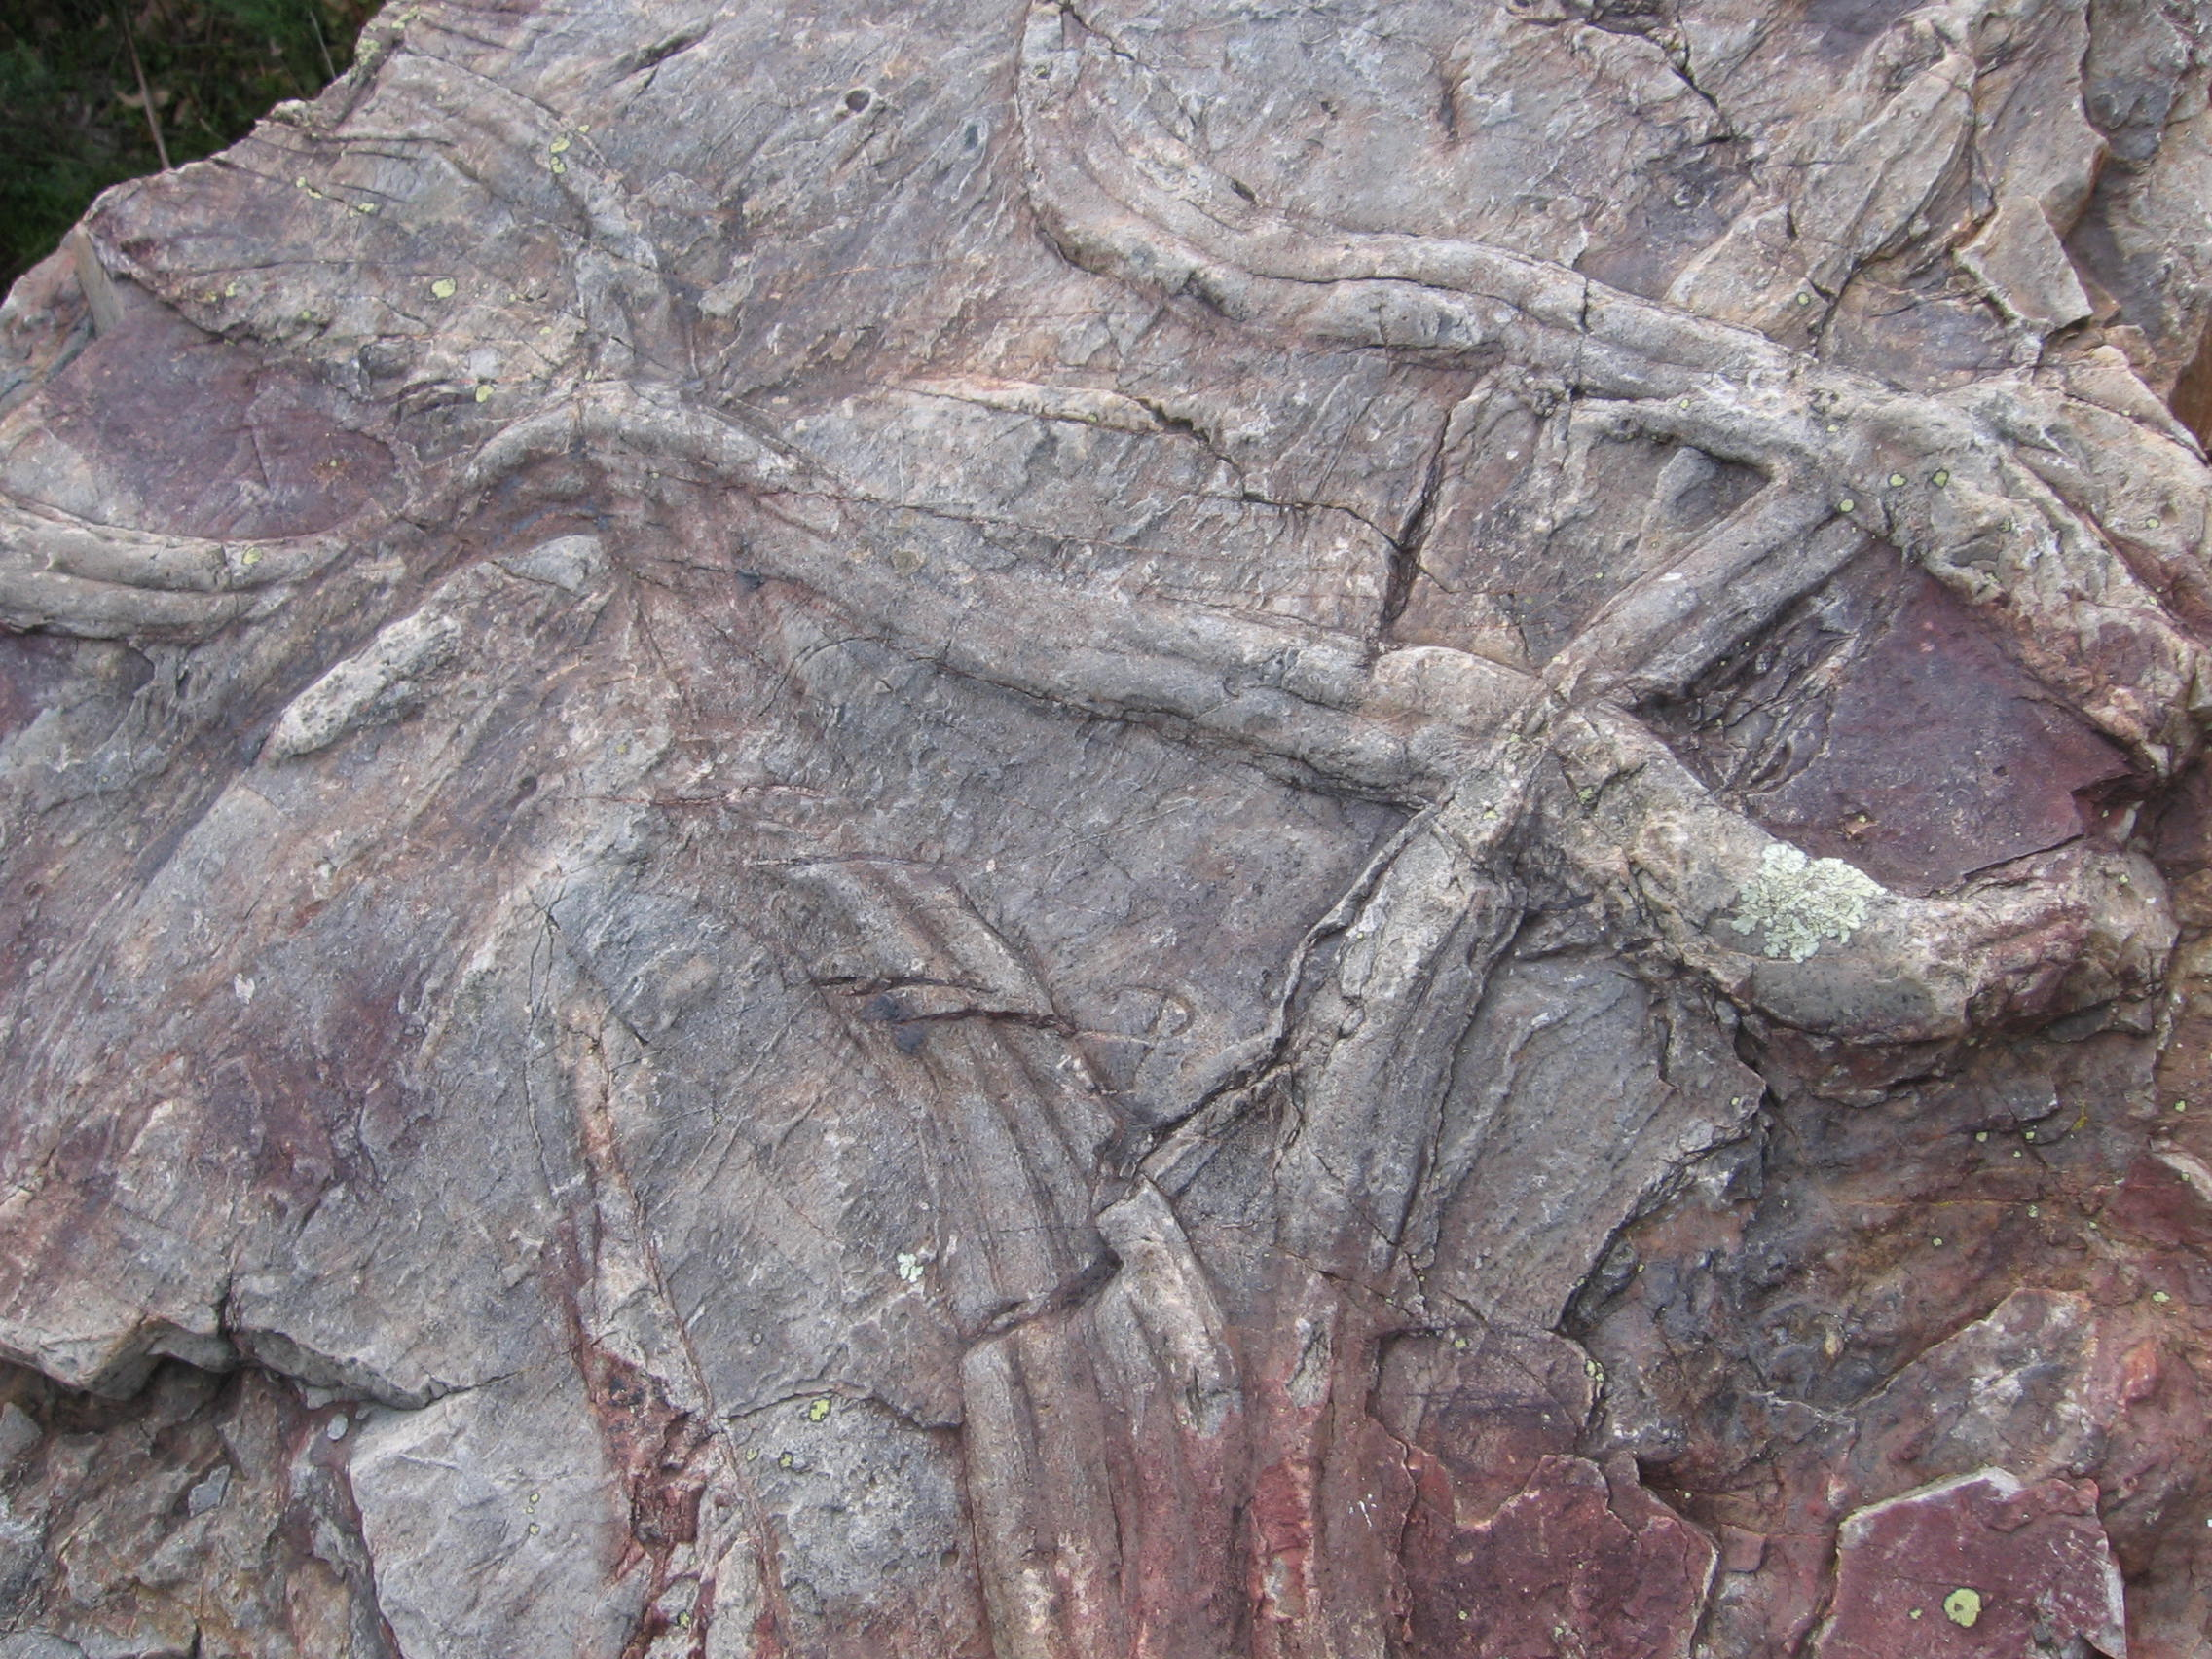 This rock has dual-lobed tracks that are part of the Cruziana ichnofacies.